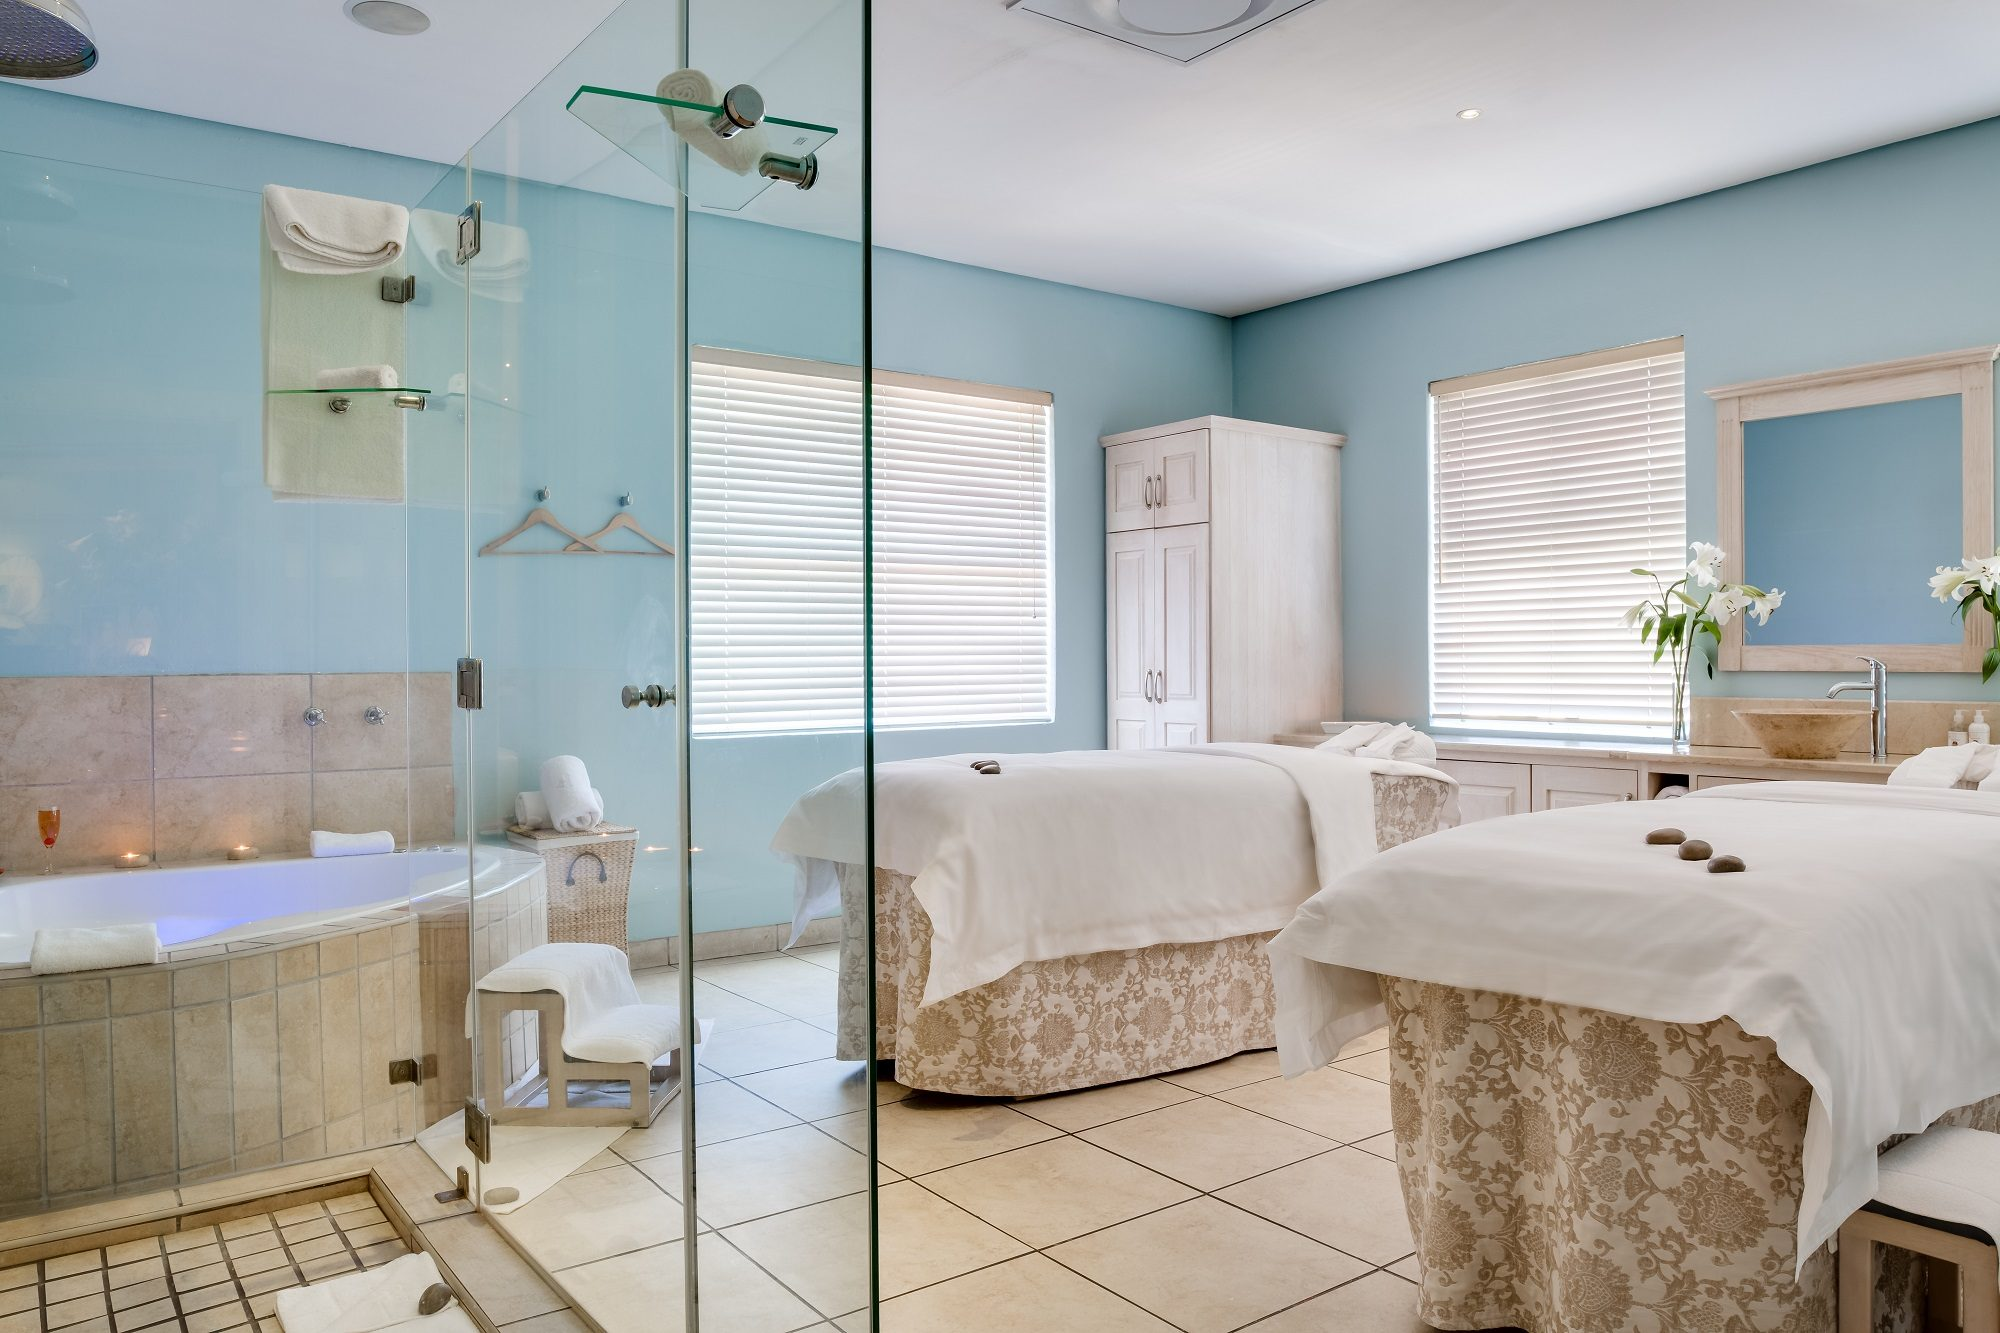 Ginkgo Luxury Spa, Wellness, Overberg, Arniston, Western Cape, beauty